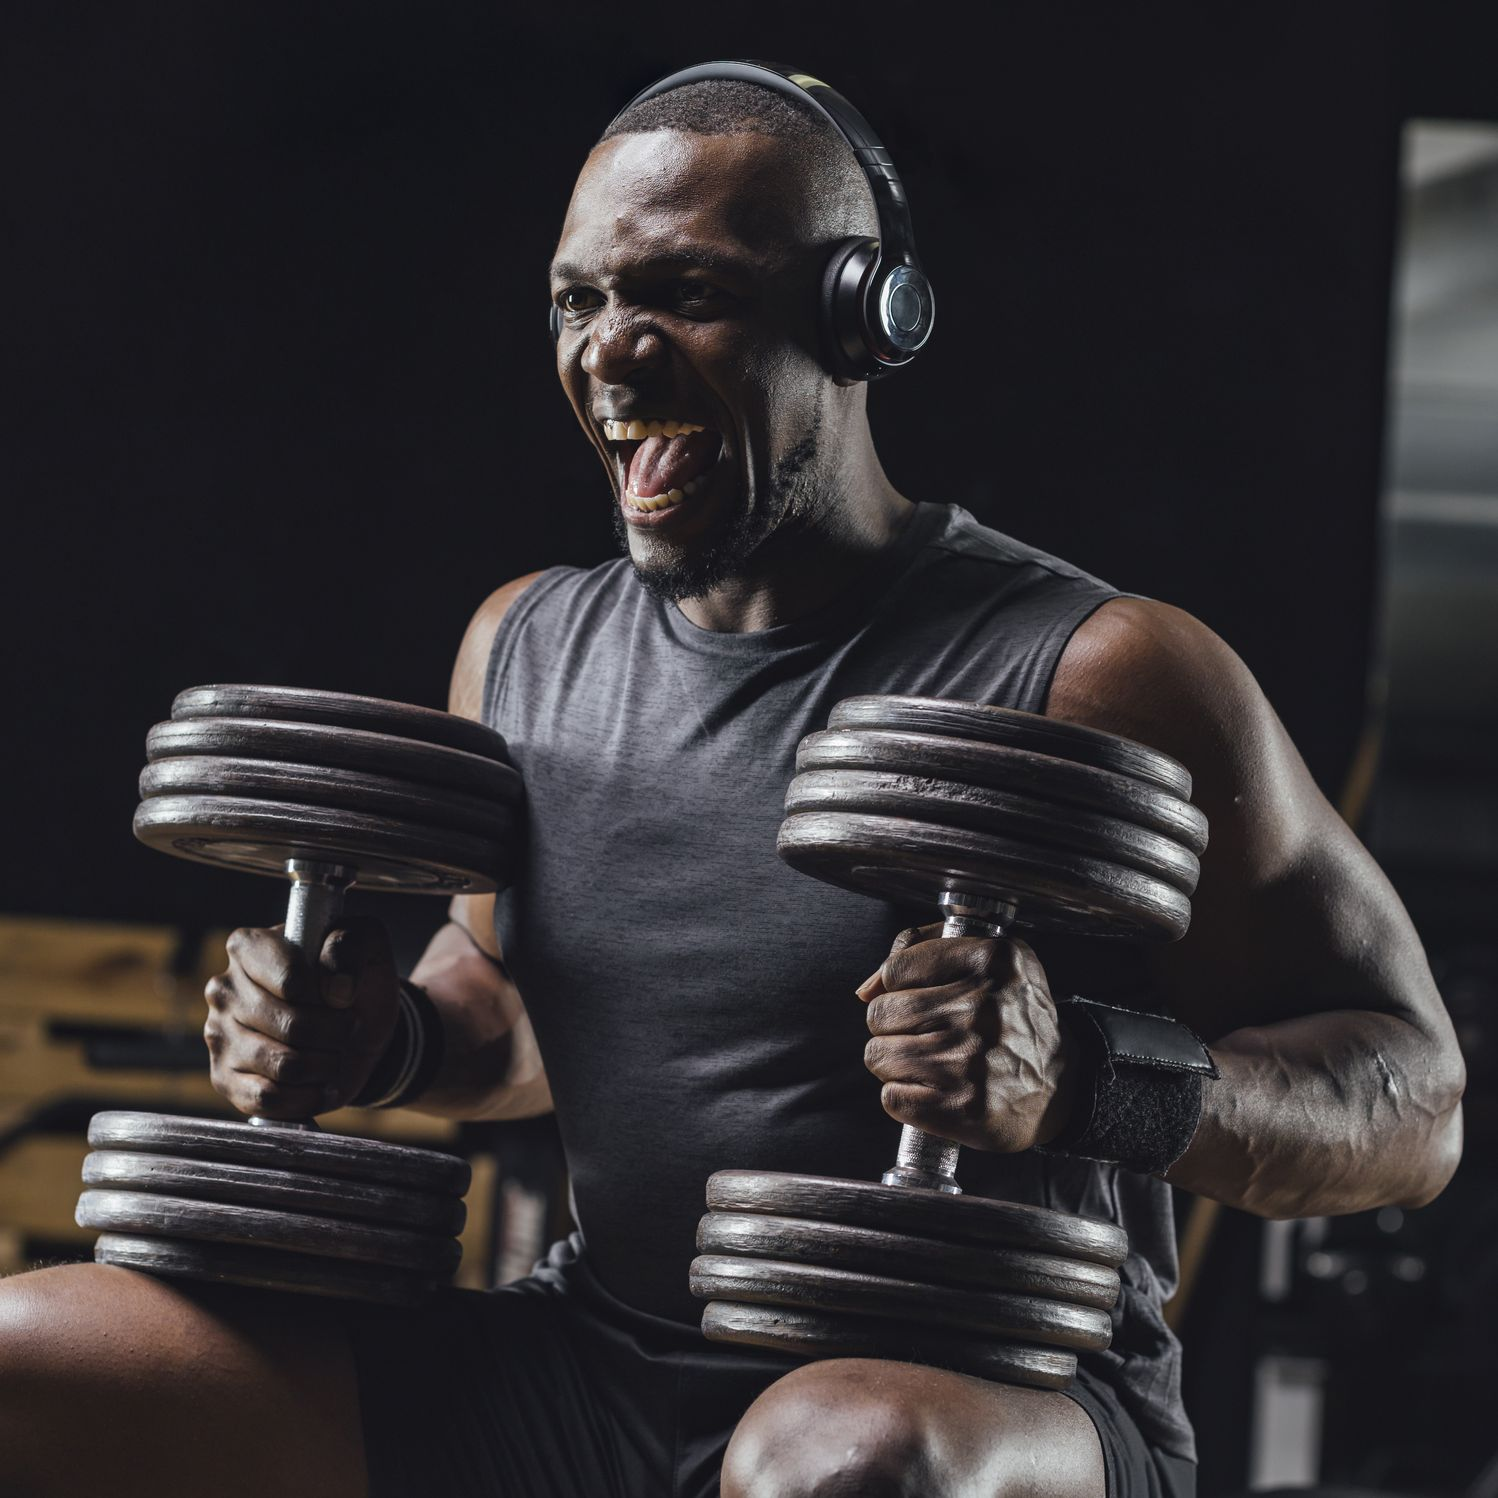 This Workout Playlist Is Scientifically Proven to Pump You Up